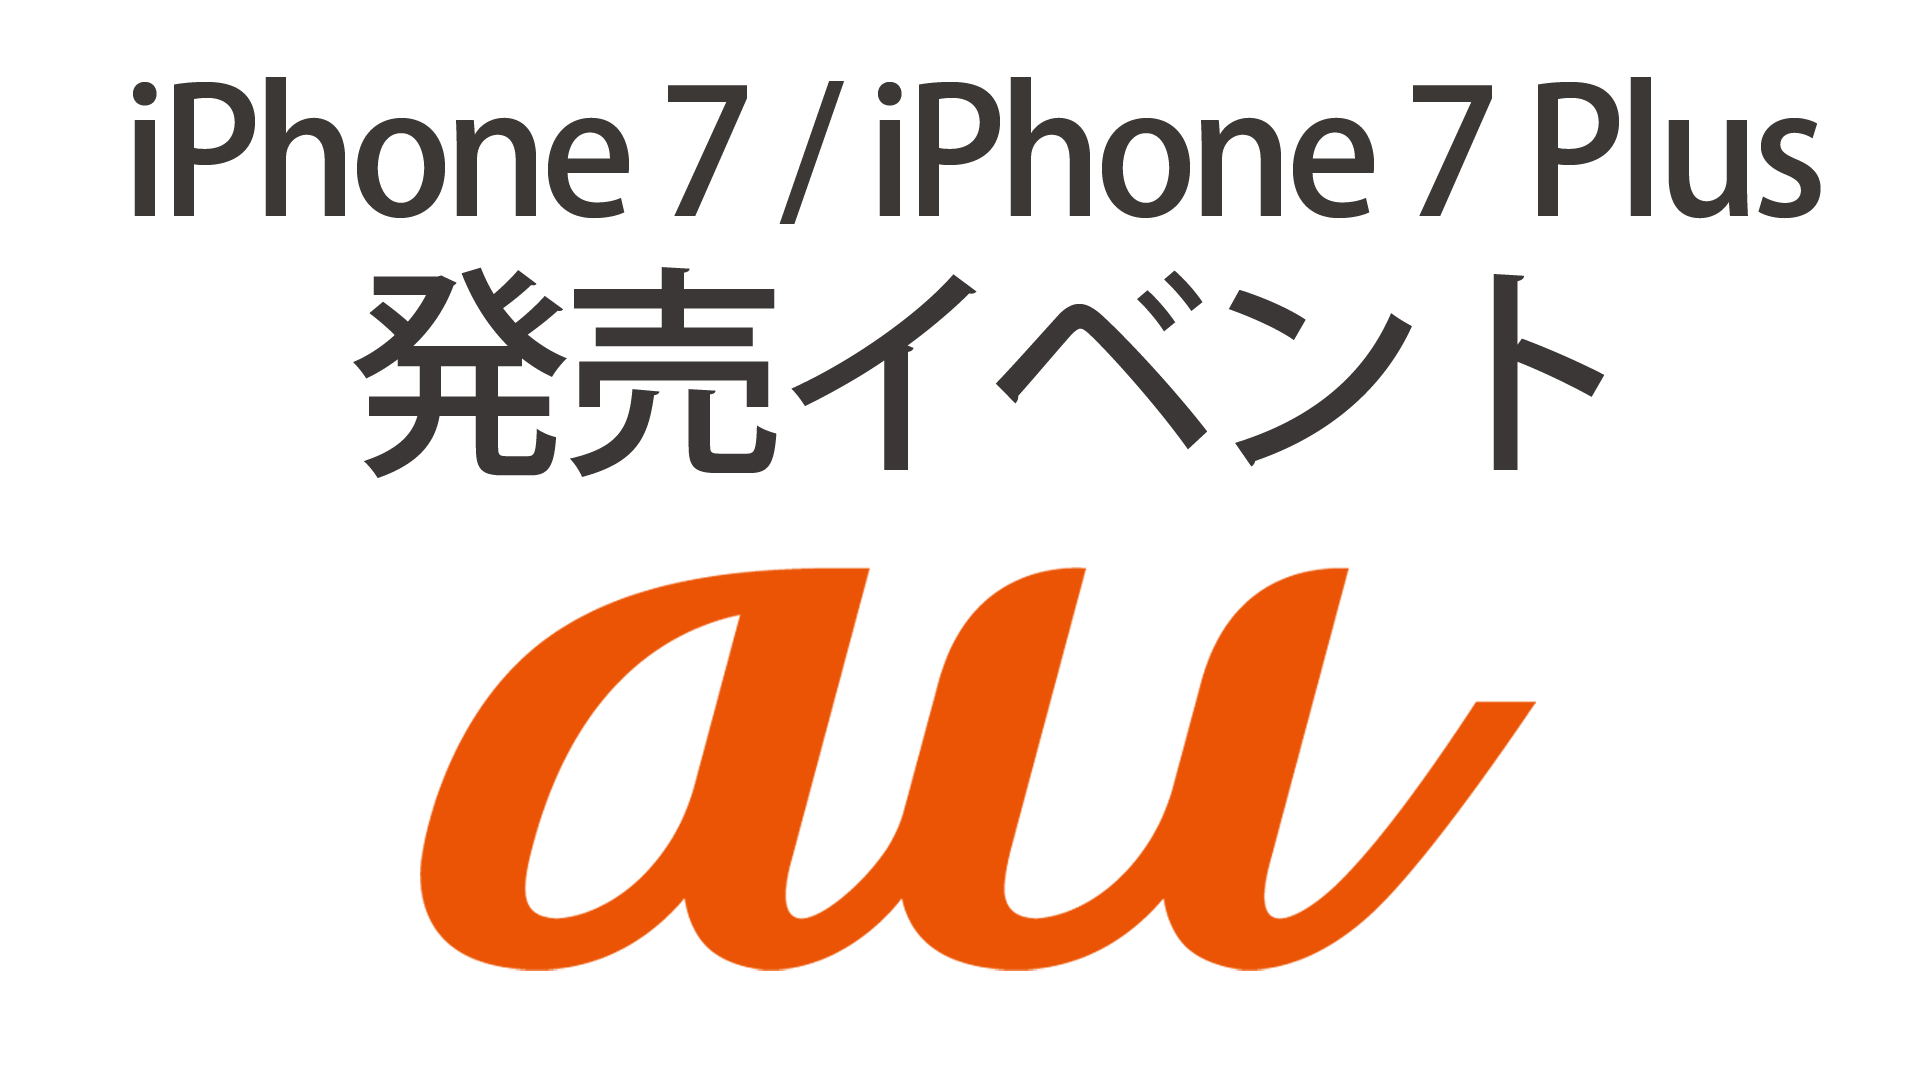 iPhone7 / iPhone7 Plus 販売イベント